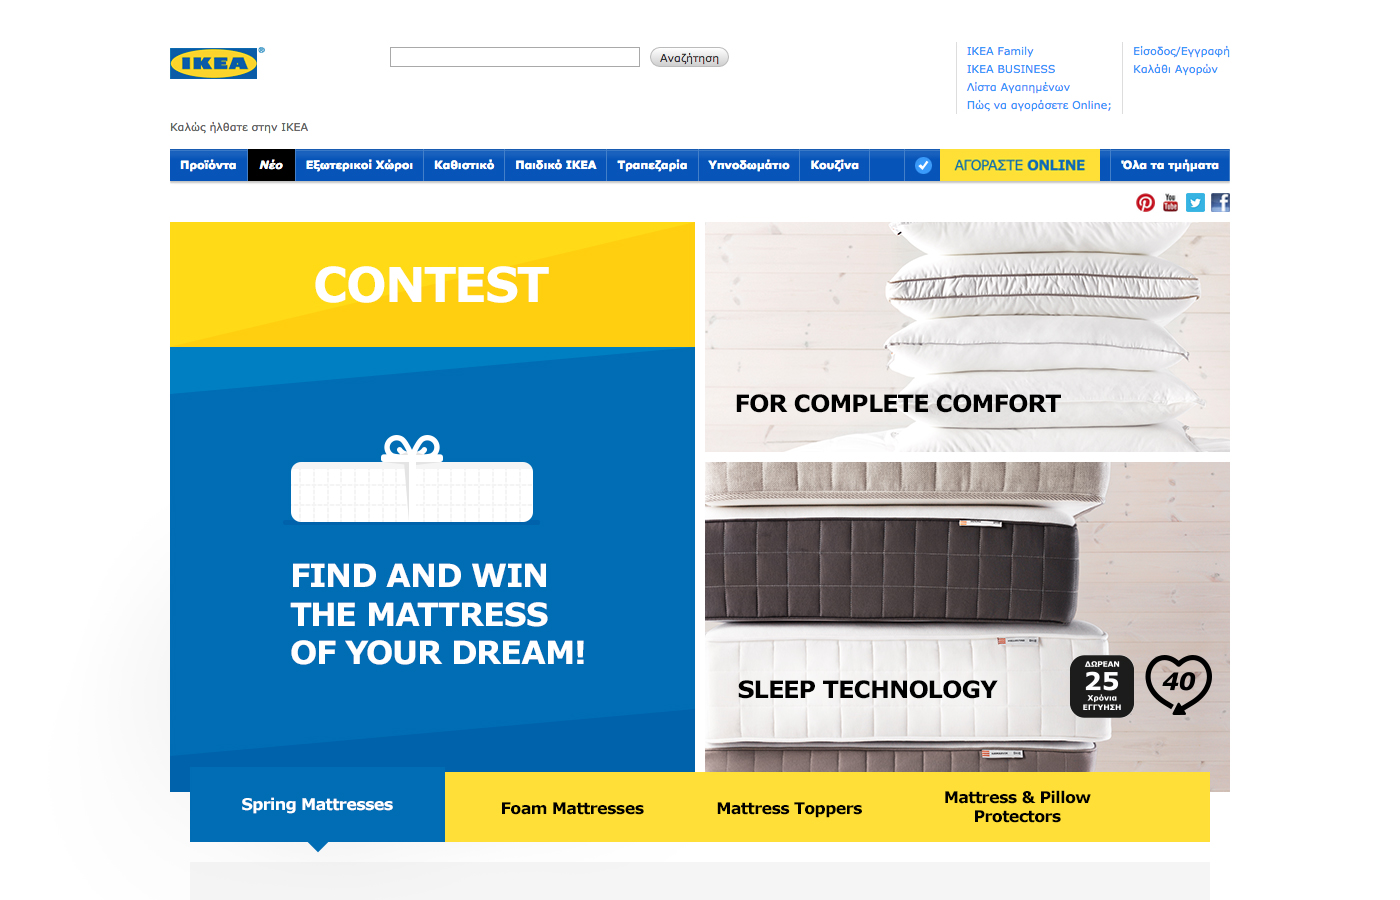 IKEA Mattresses - Contest Banner